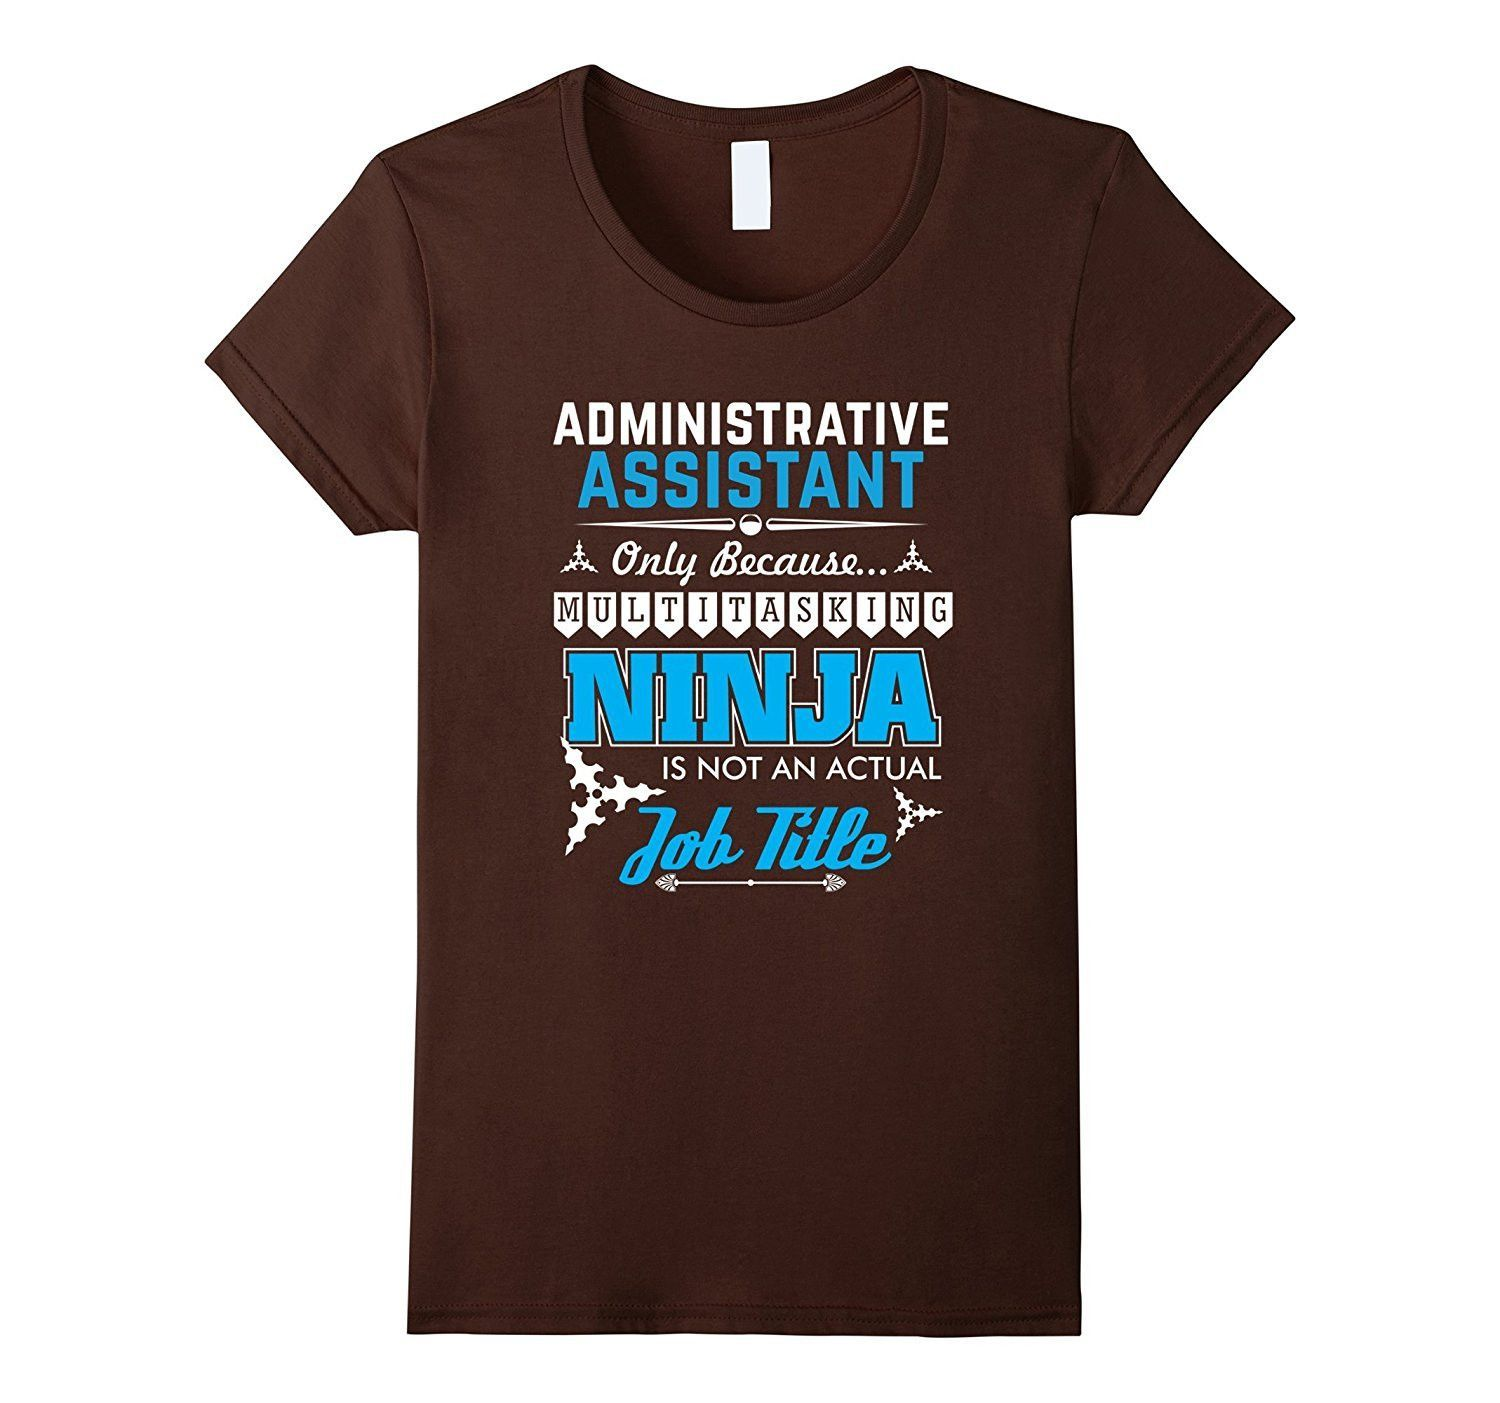 Administrative Professional Assistant Day T Shirt Tee Administrative